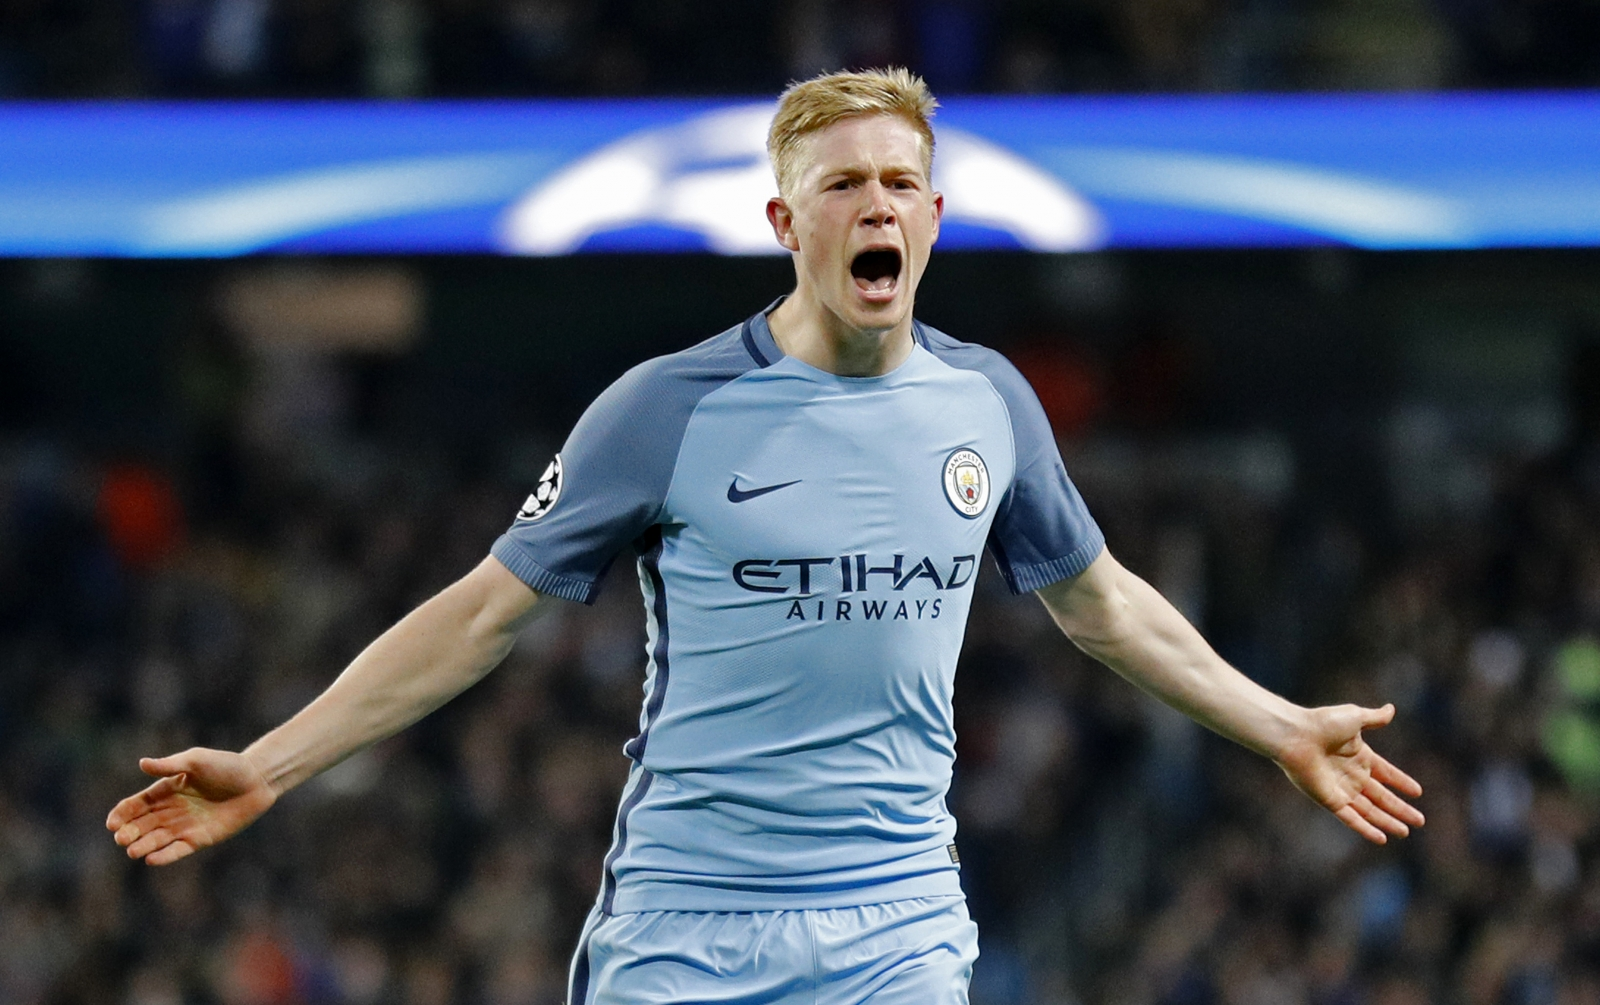 Kevin De Bruyne: Manchester City Midfielder Dismisses View